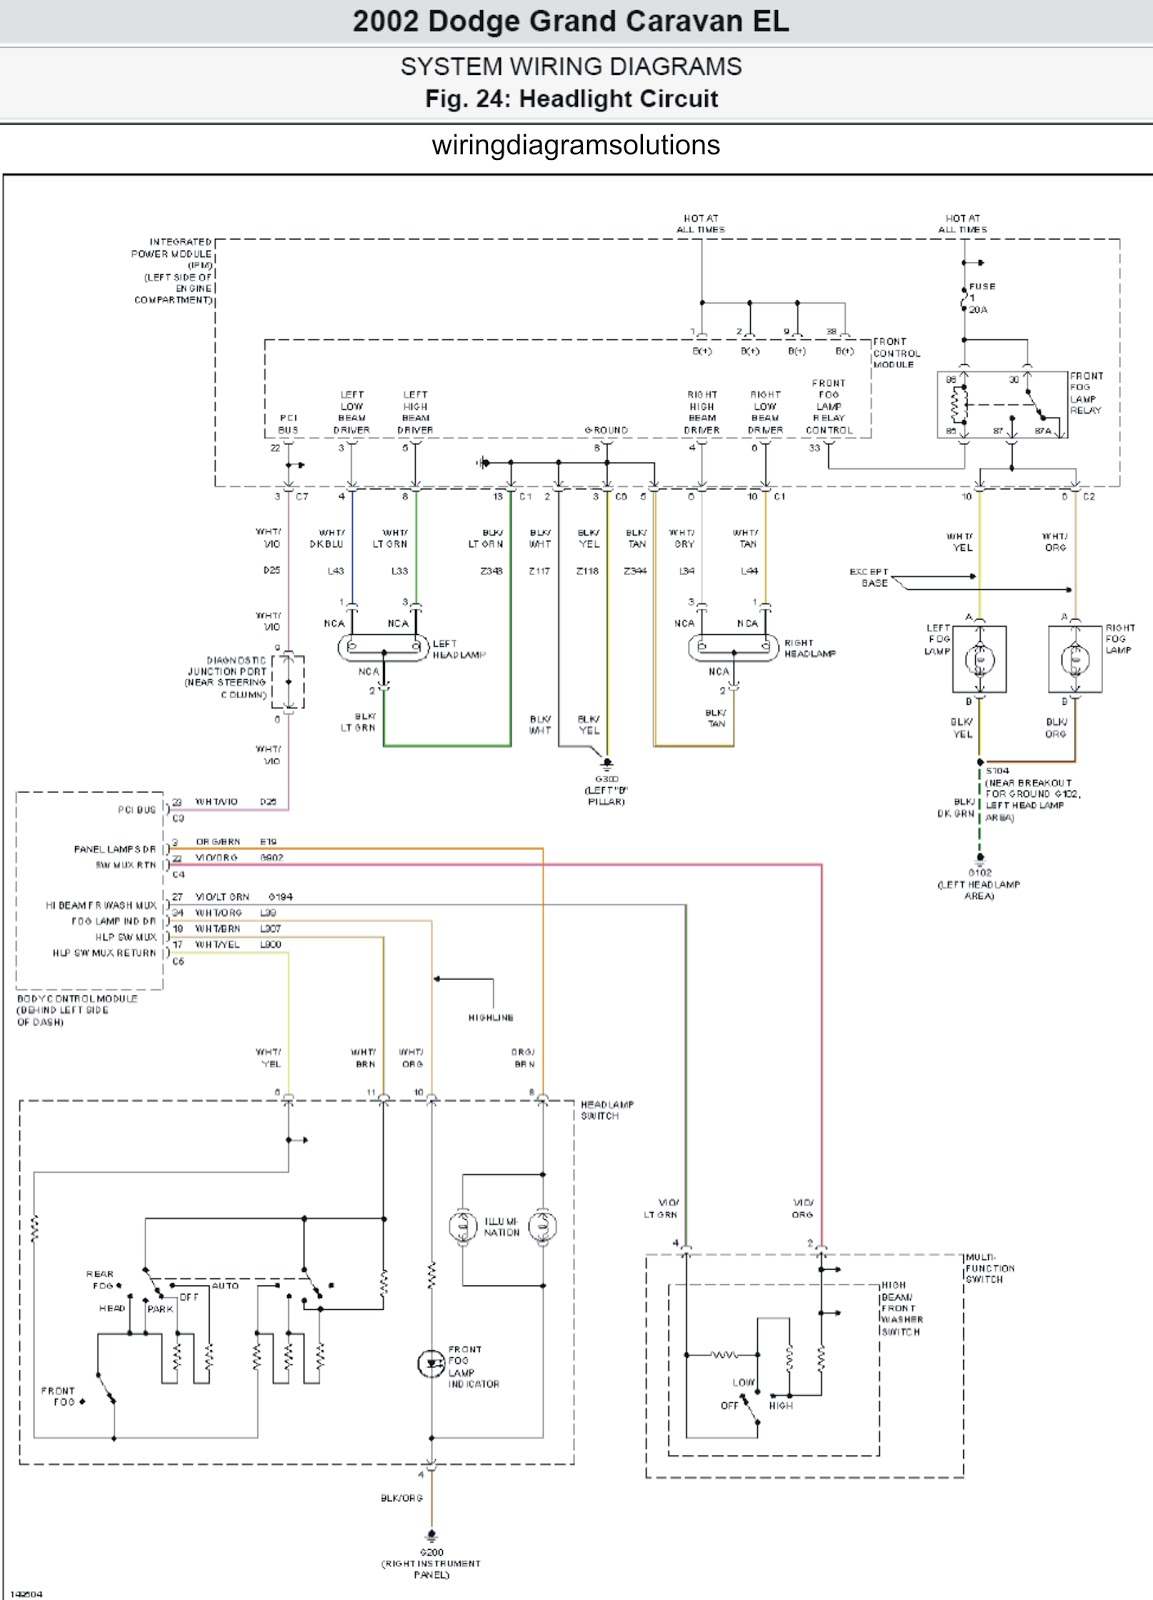 2002 dodge grand caravan el system wiring diagrams ... wiring diagram for 2010 dodge grand caravan #7